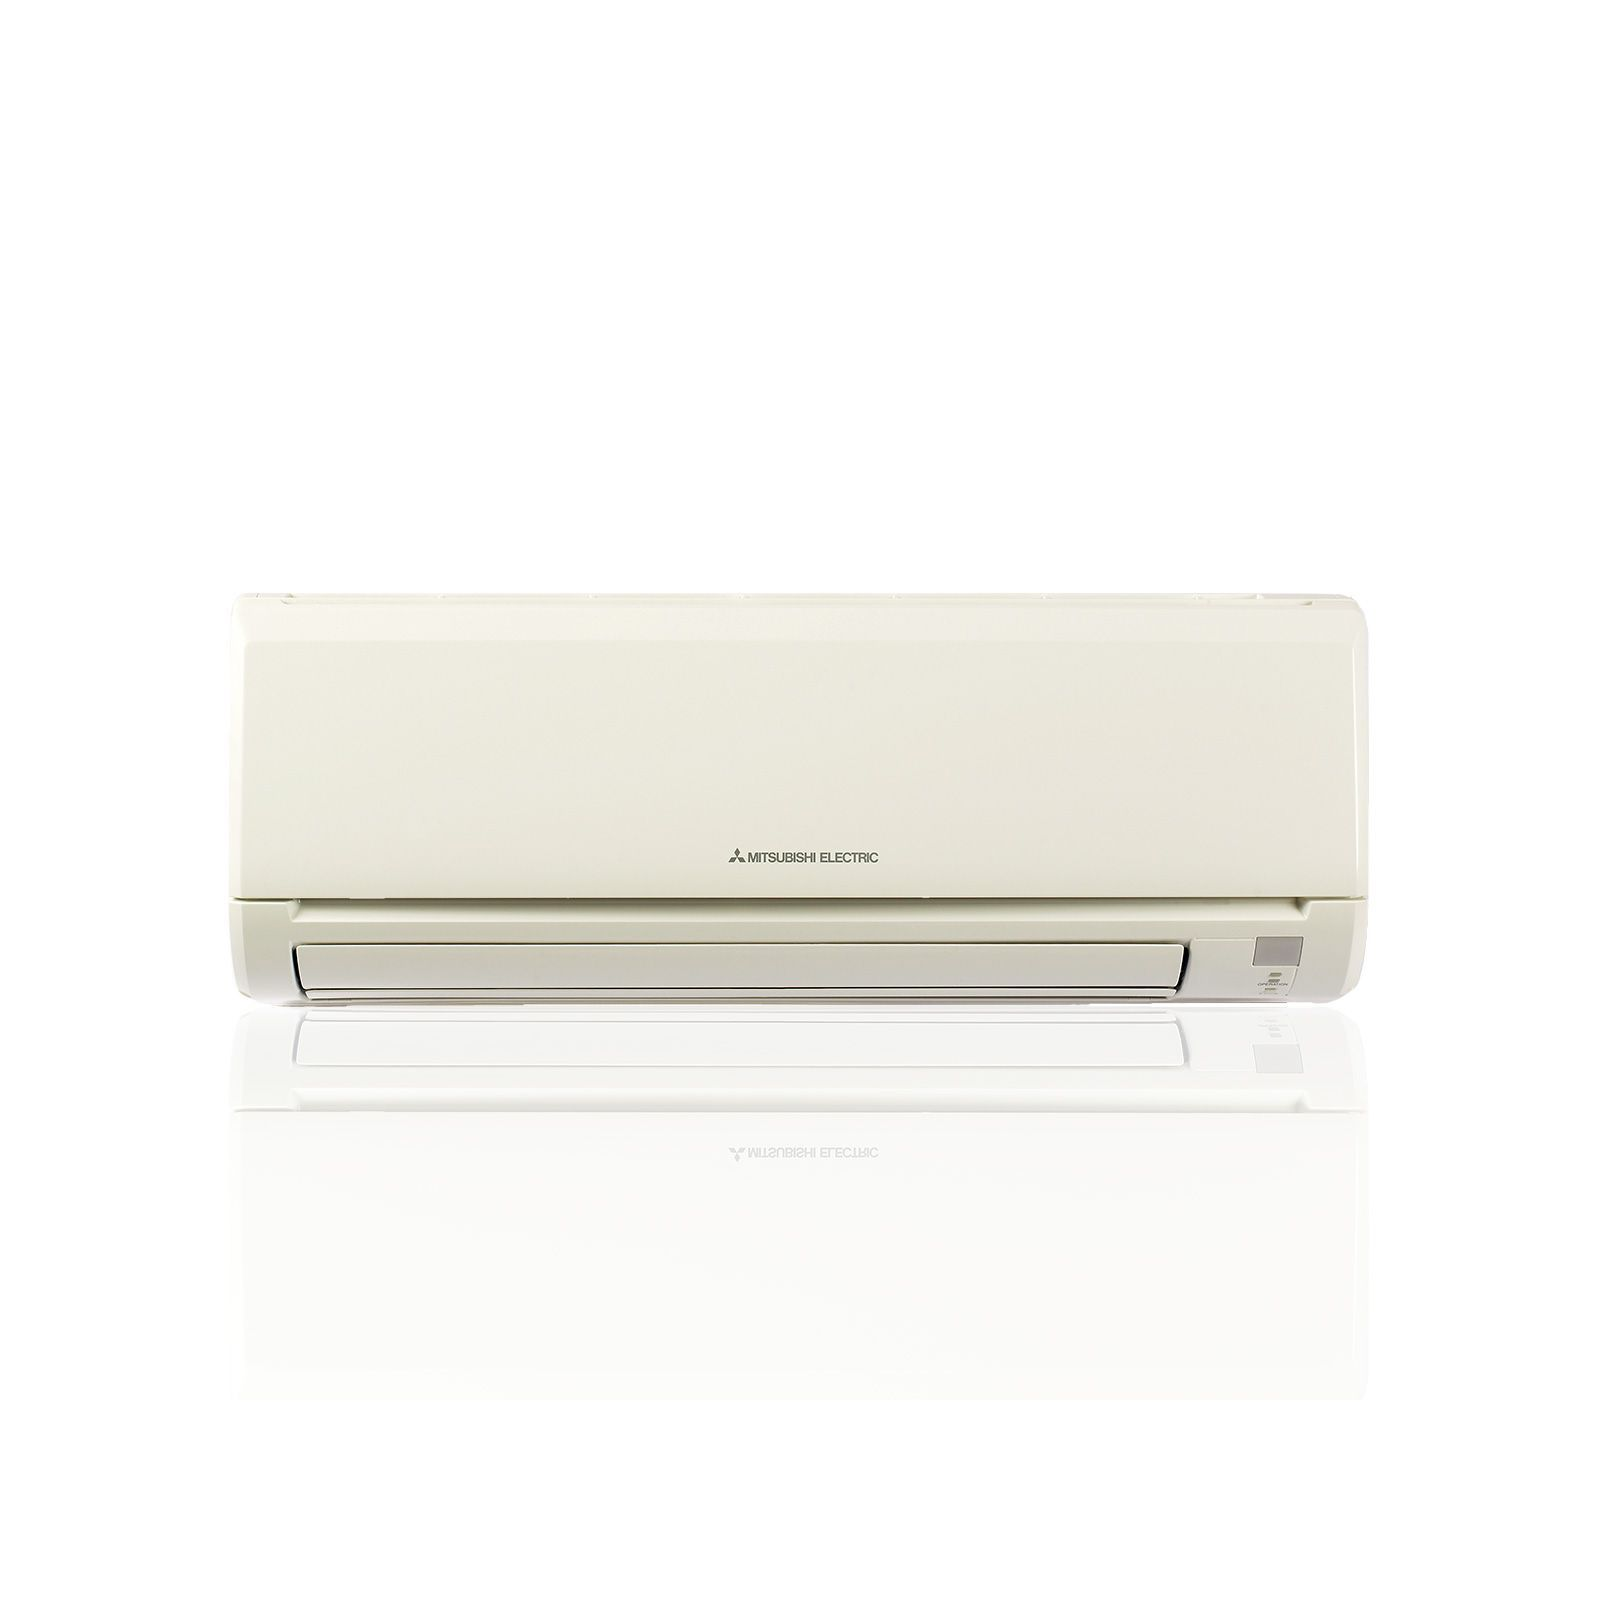 Mitsubishi MSY-GL09NA-U1 - M Series 9K BTU/H Wall Mounted, Indoor ...